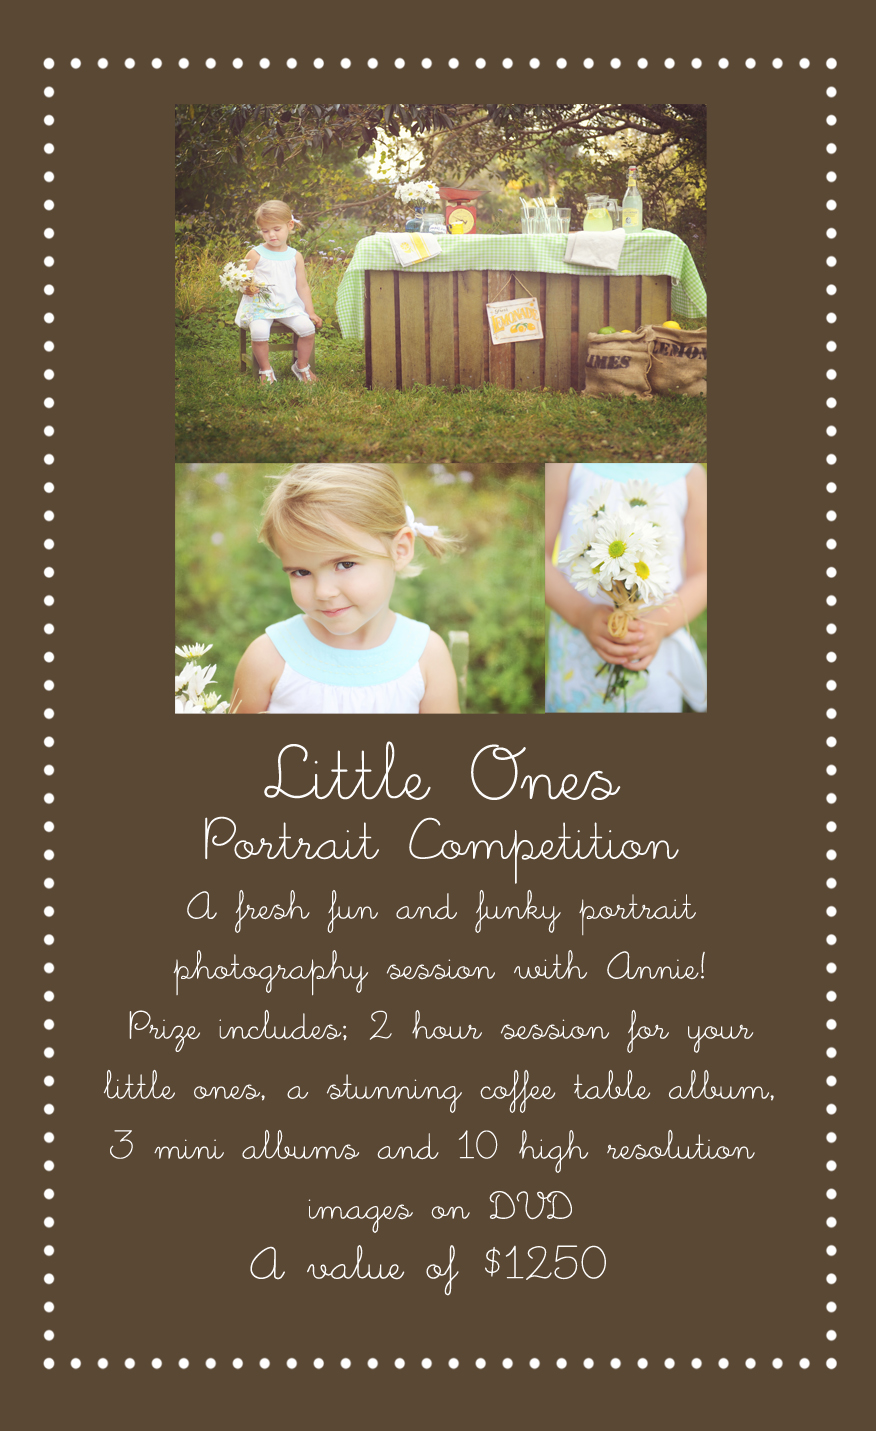 photography competition for a photo session with funky photography